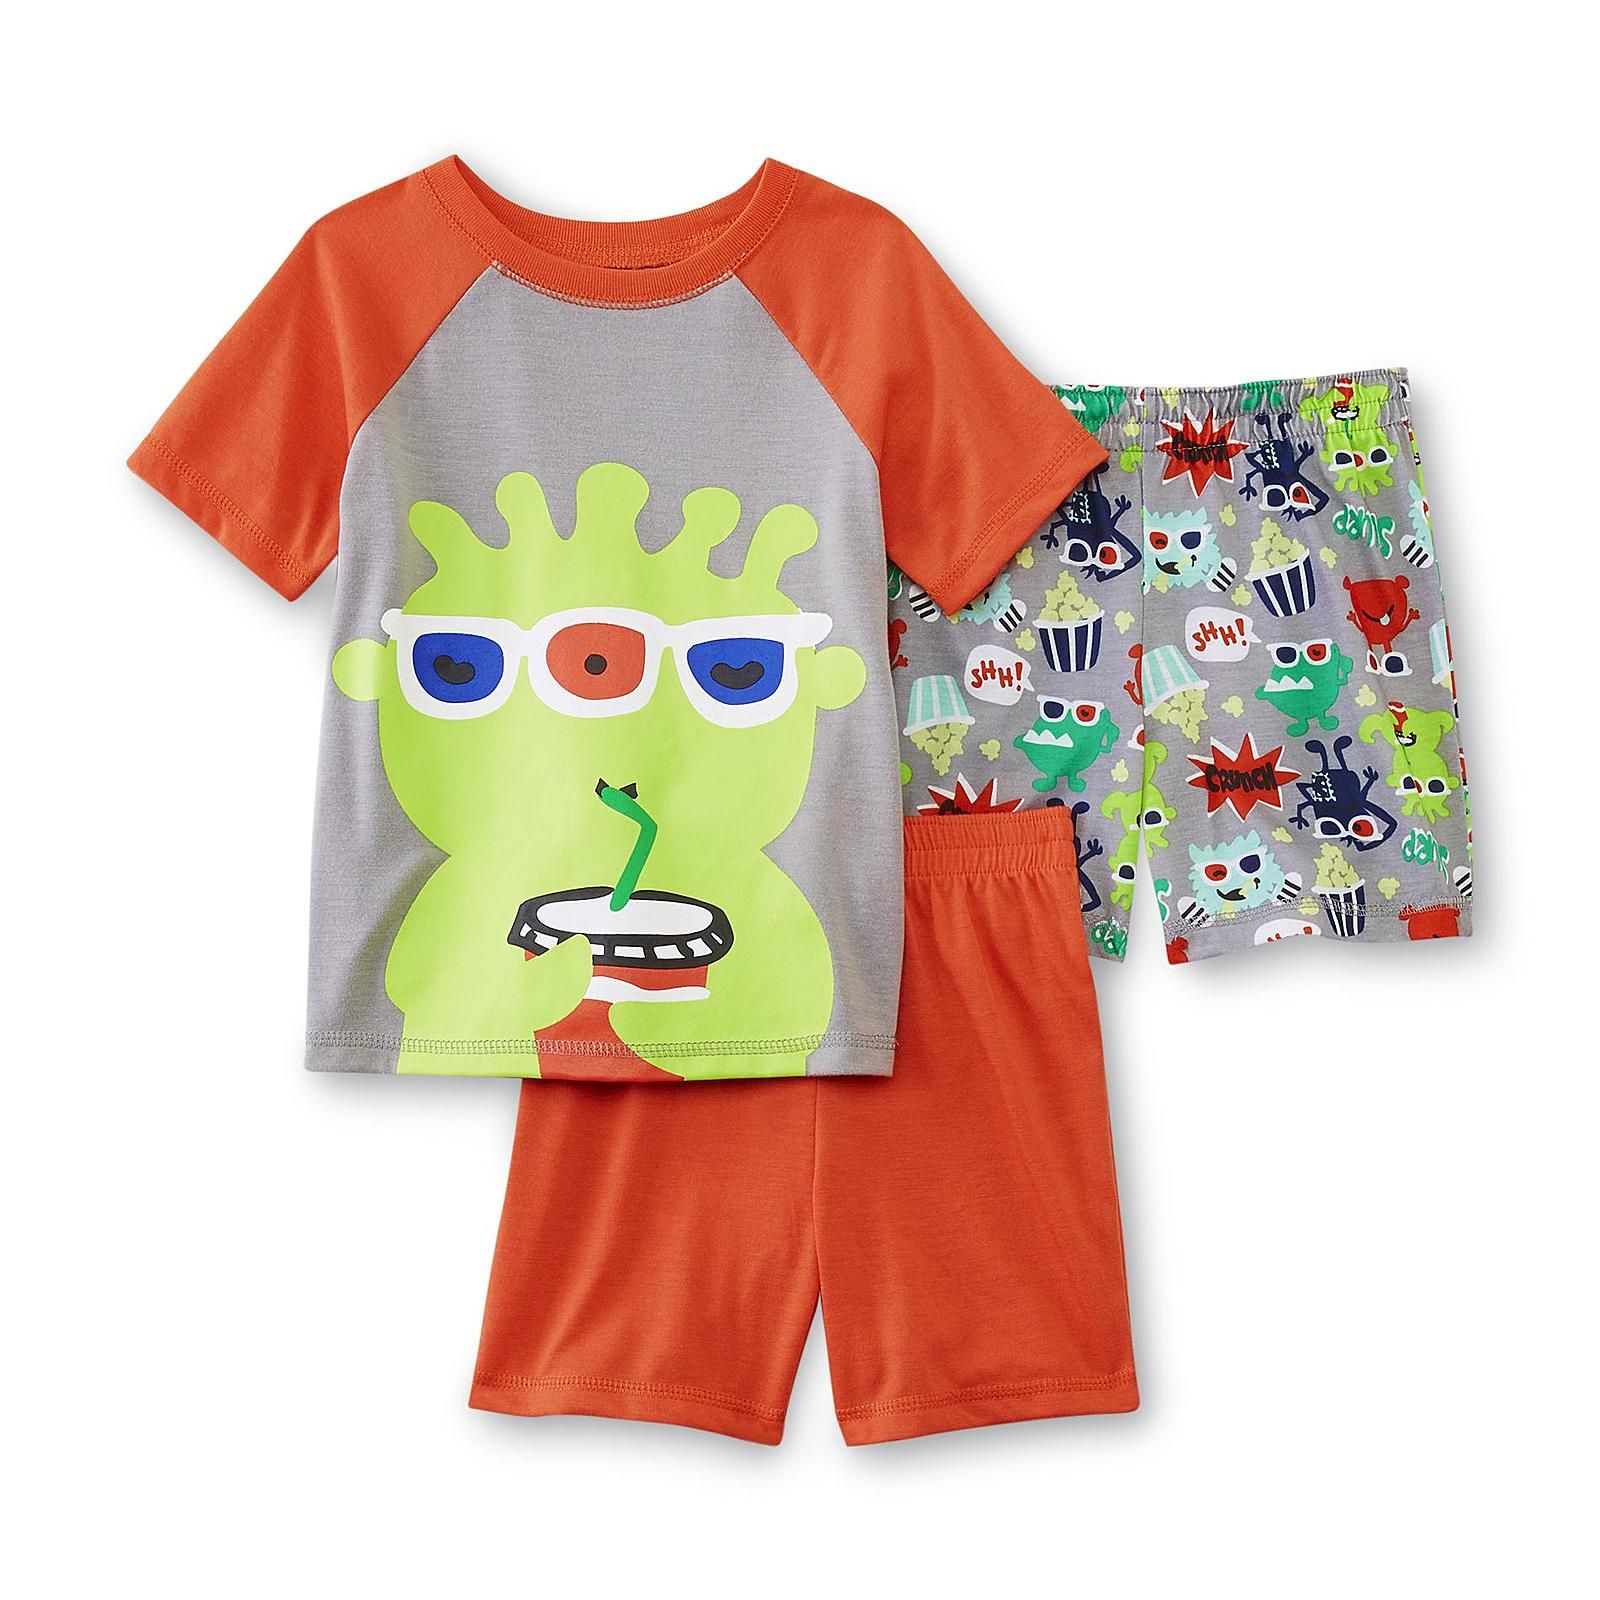 Wonderkids Infant Toddler Boy S Pajama Shirt 2 Pairs Shorts Movie Monster Baby Baby Toddler Cloth Boys Pajamas Baby Toddler Clothing Pajama Shirt